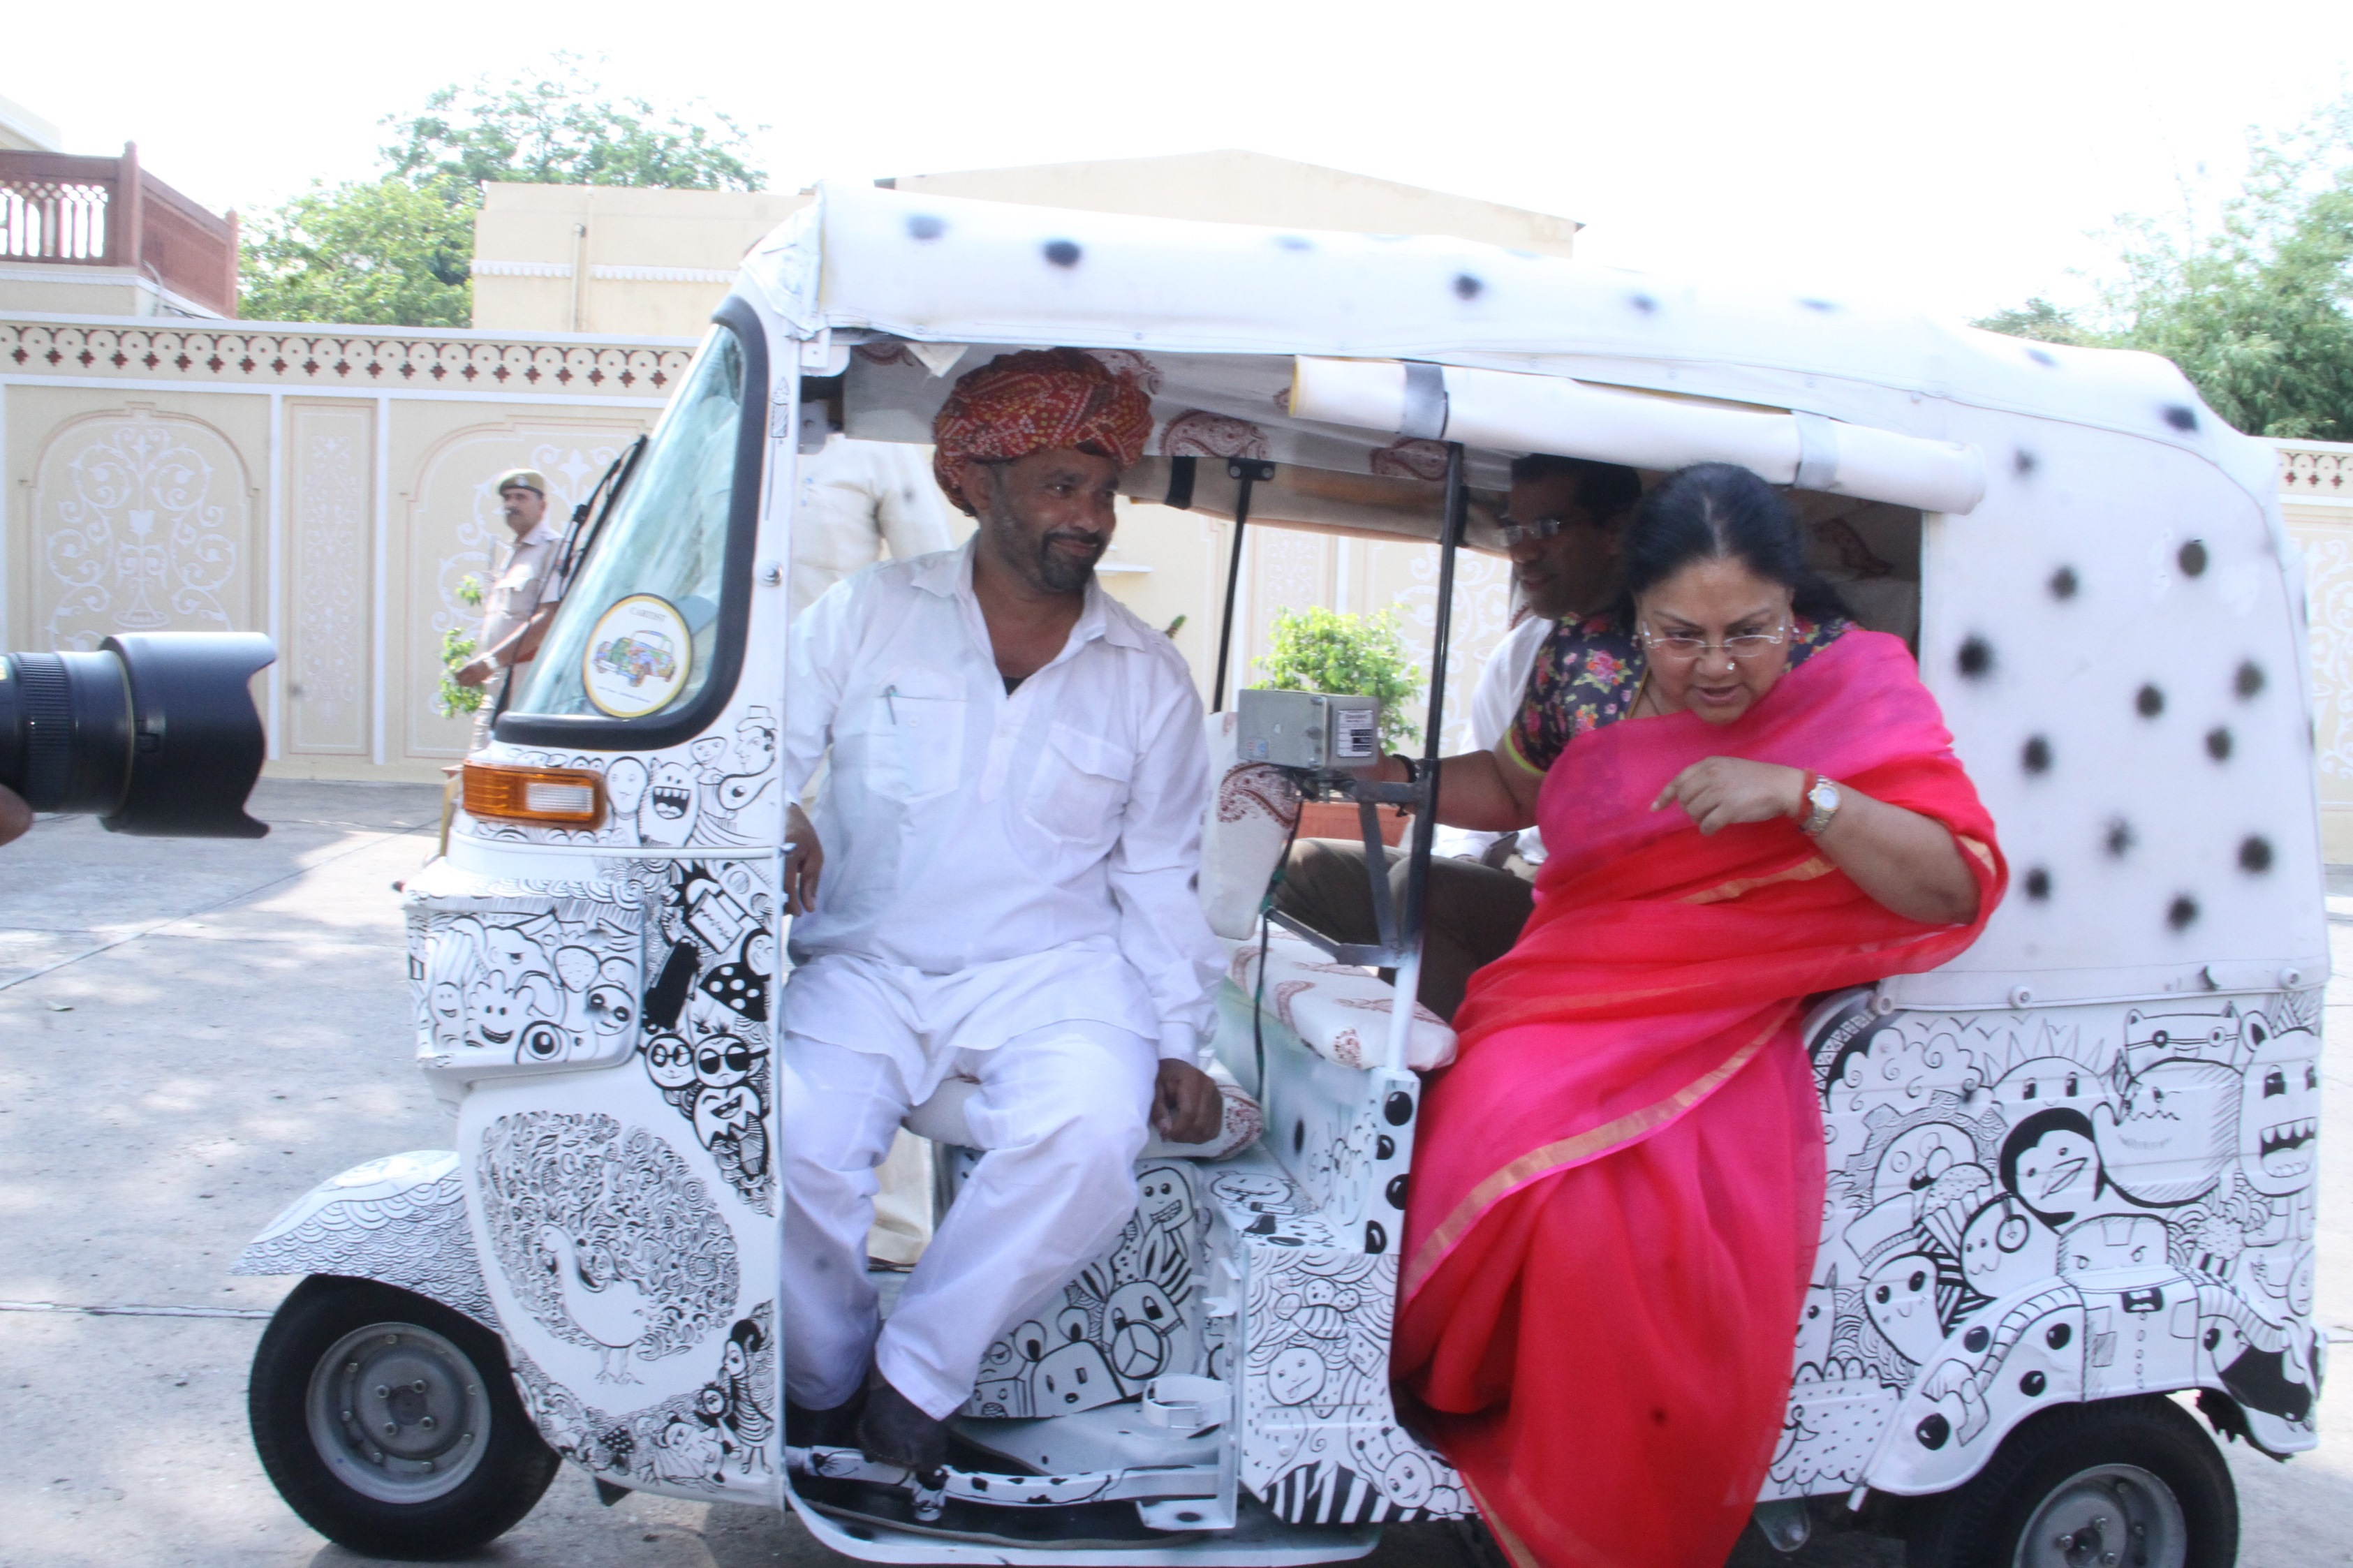 When Vasundhara Raje asked for an auto ride